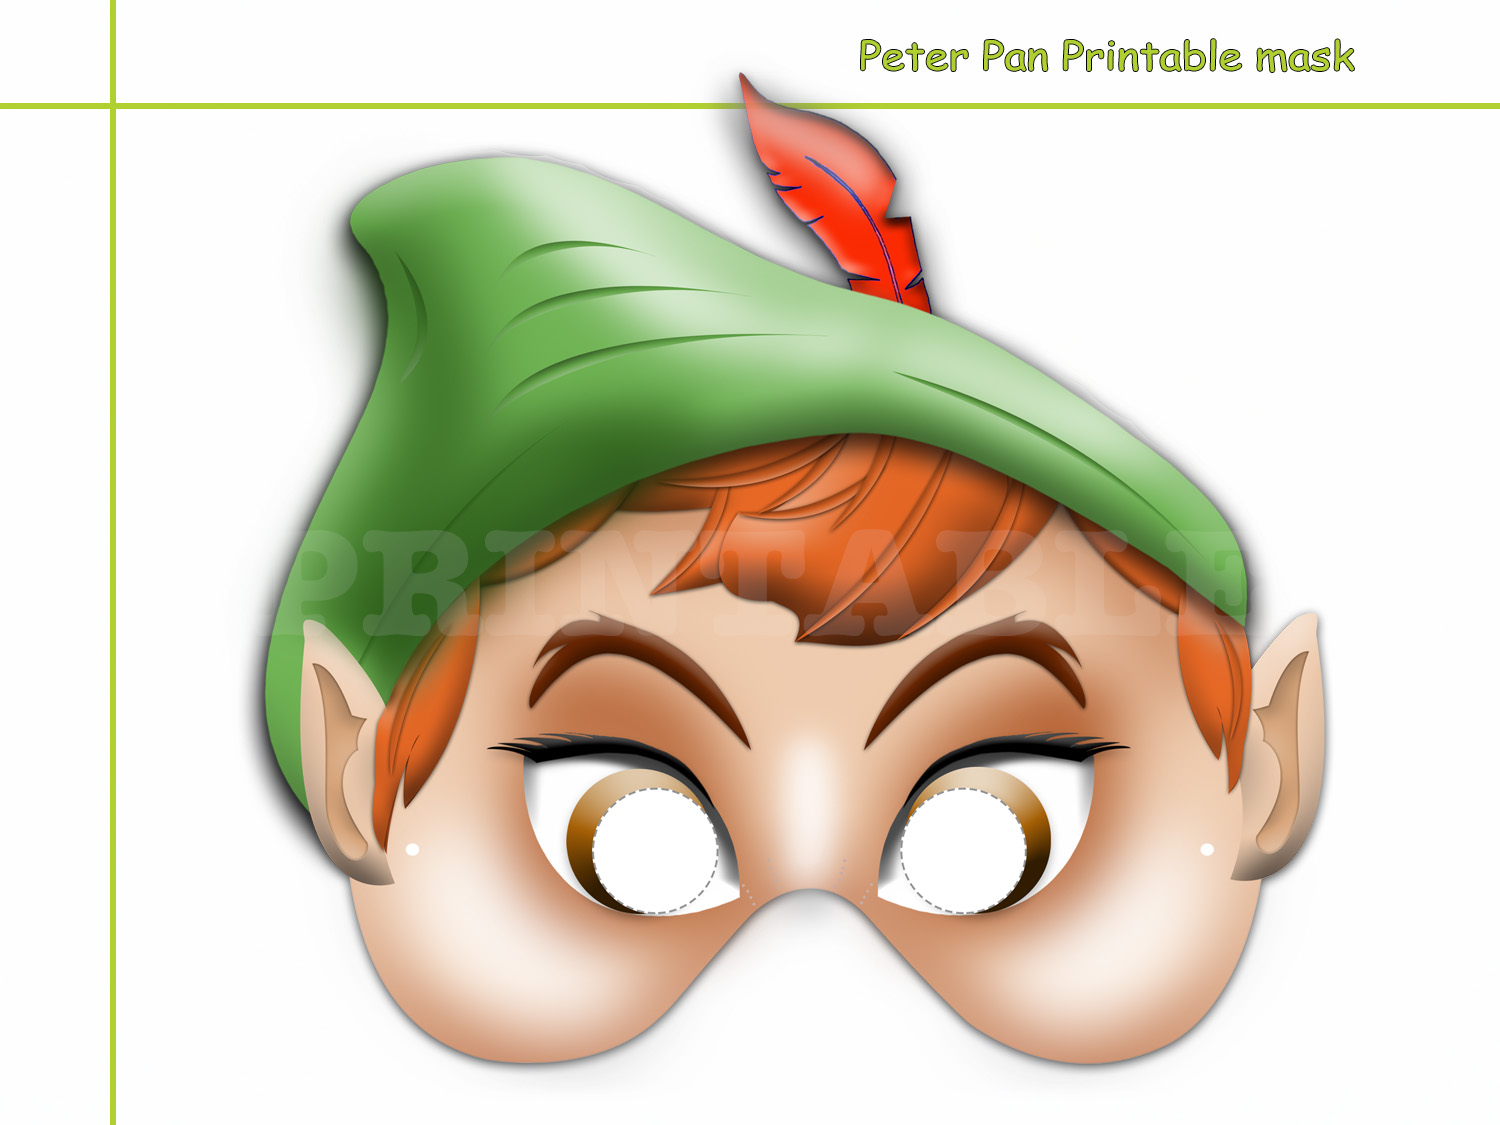 Unique Peter Pan Printable Mask By Holidaypartystar On Zibbet